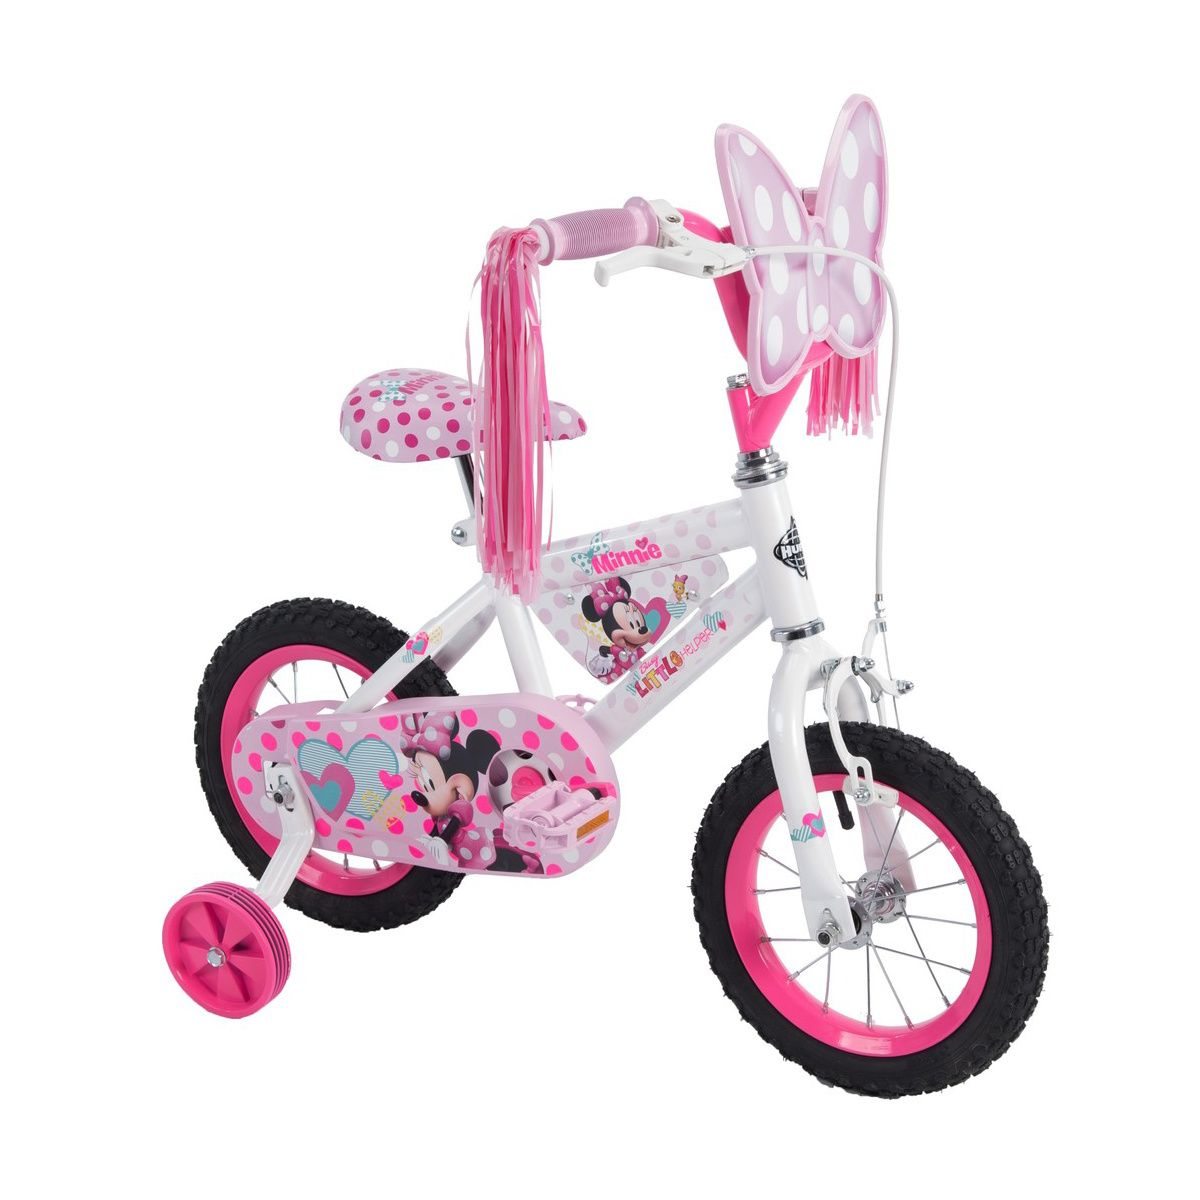 30cm Minnie Bike Bike Minnie Bow Friends In Love